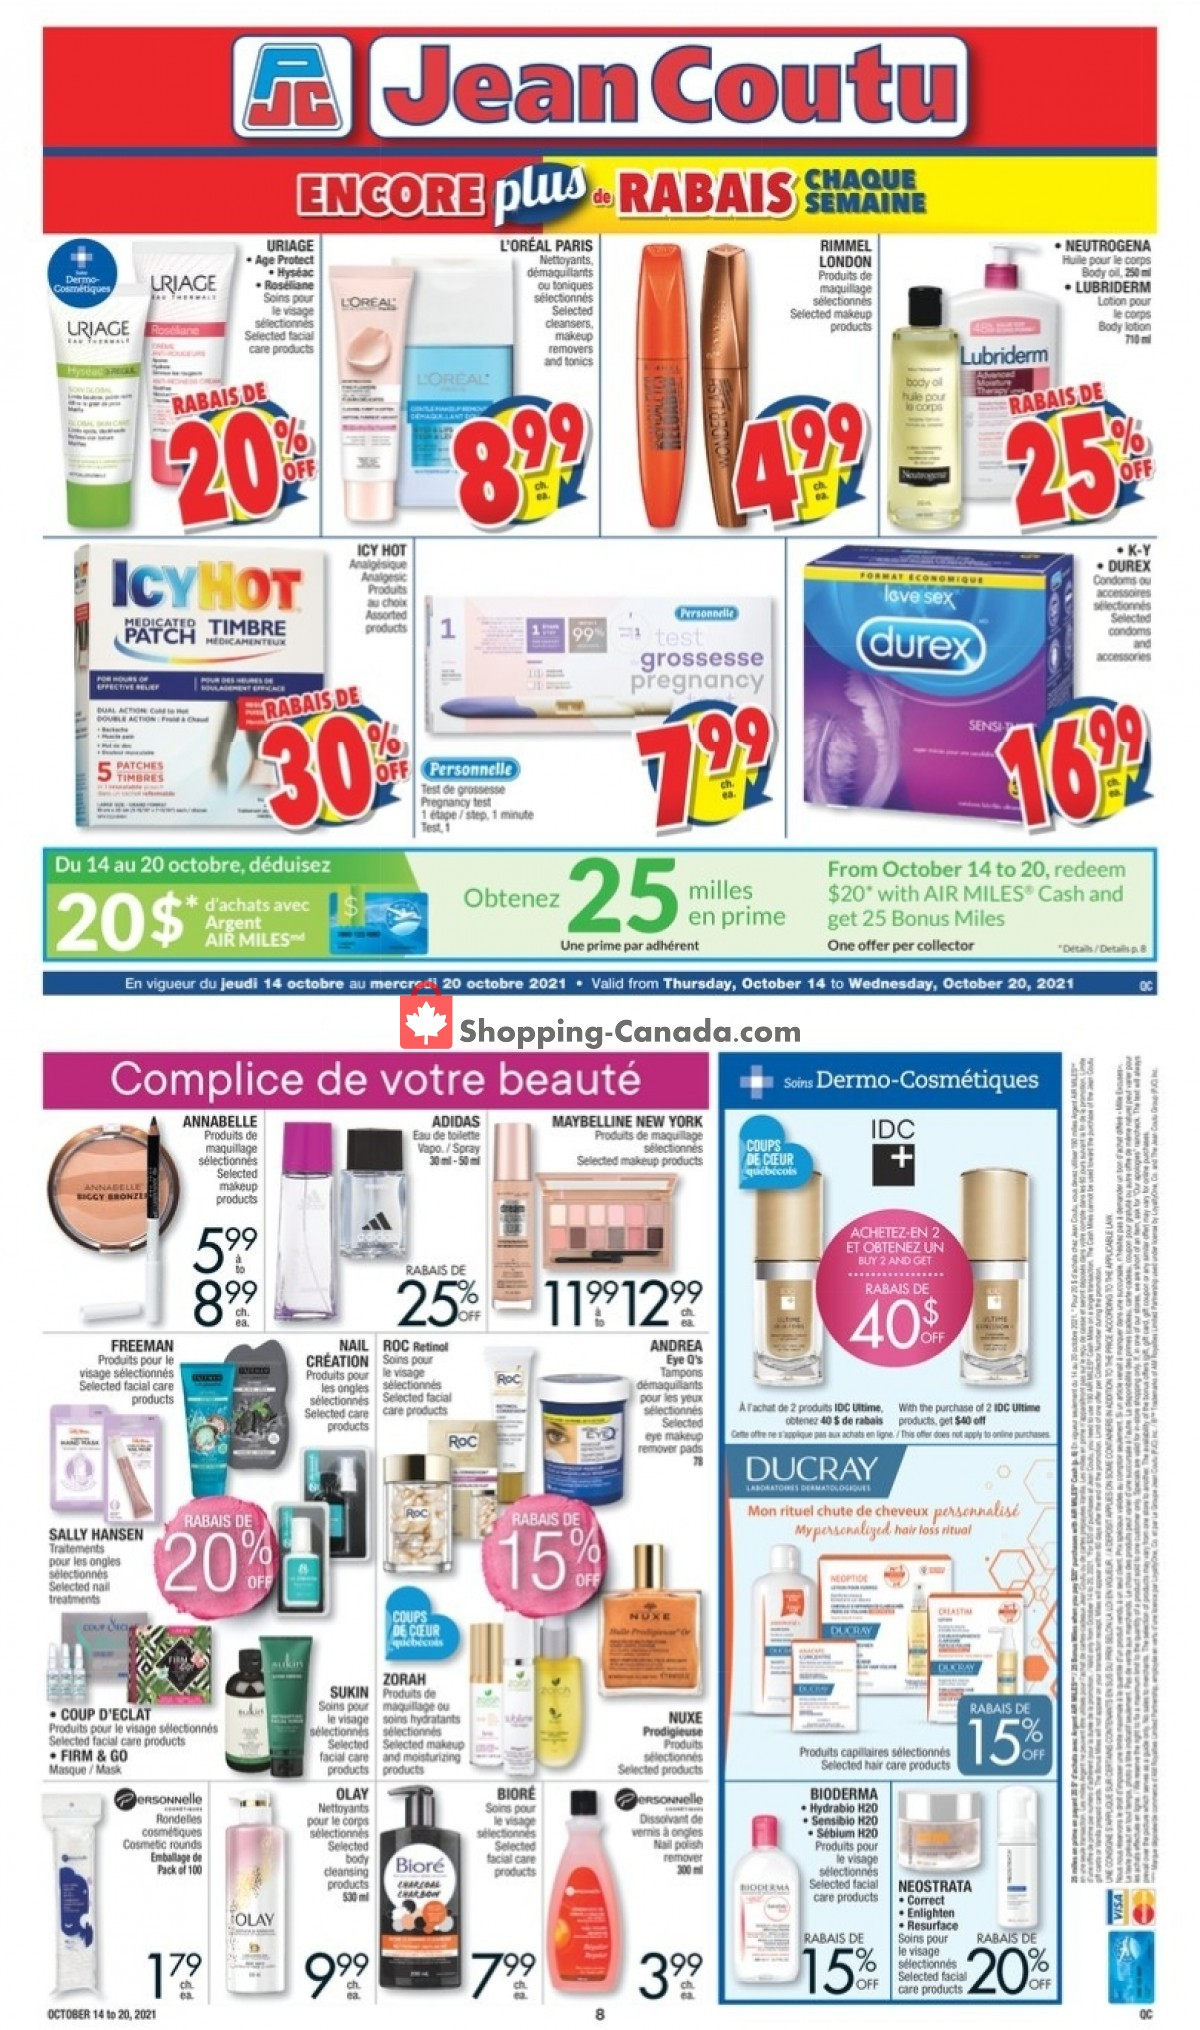 Flyer Jean Coutu Pharmacy Canada - from Thursday October 14, 2021 to Wednesday October 20, 2021